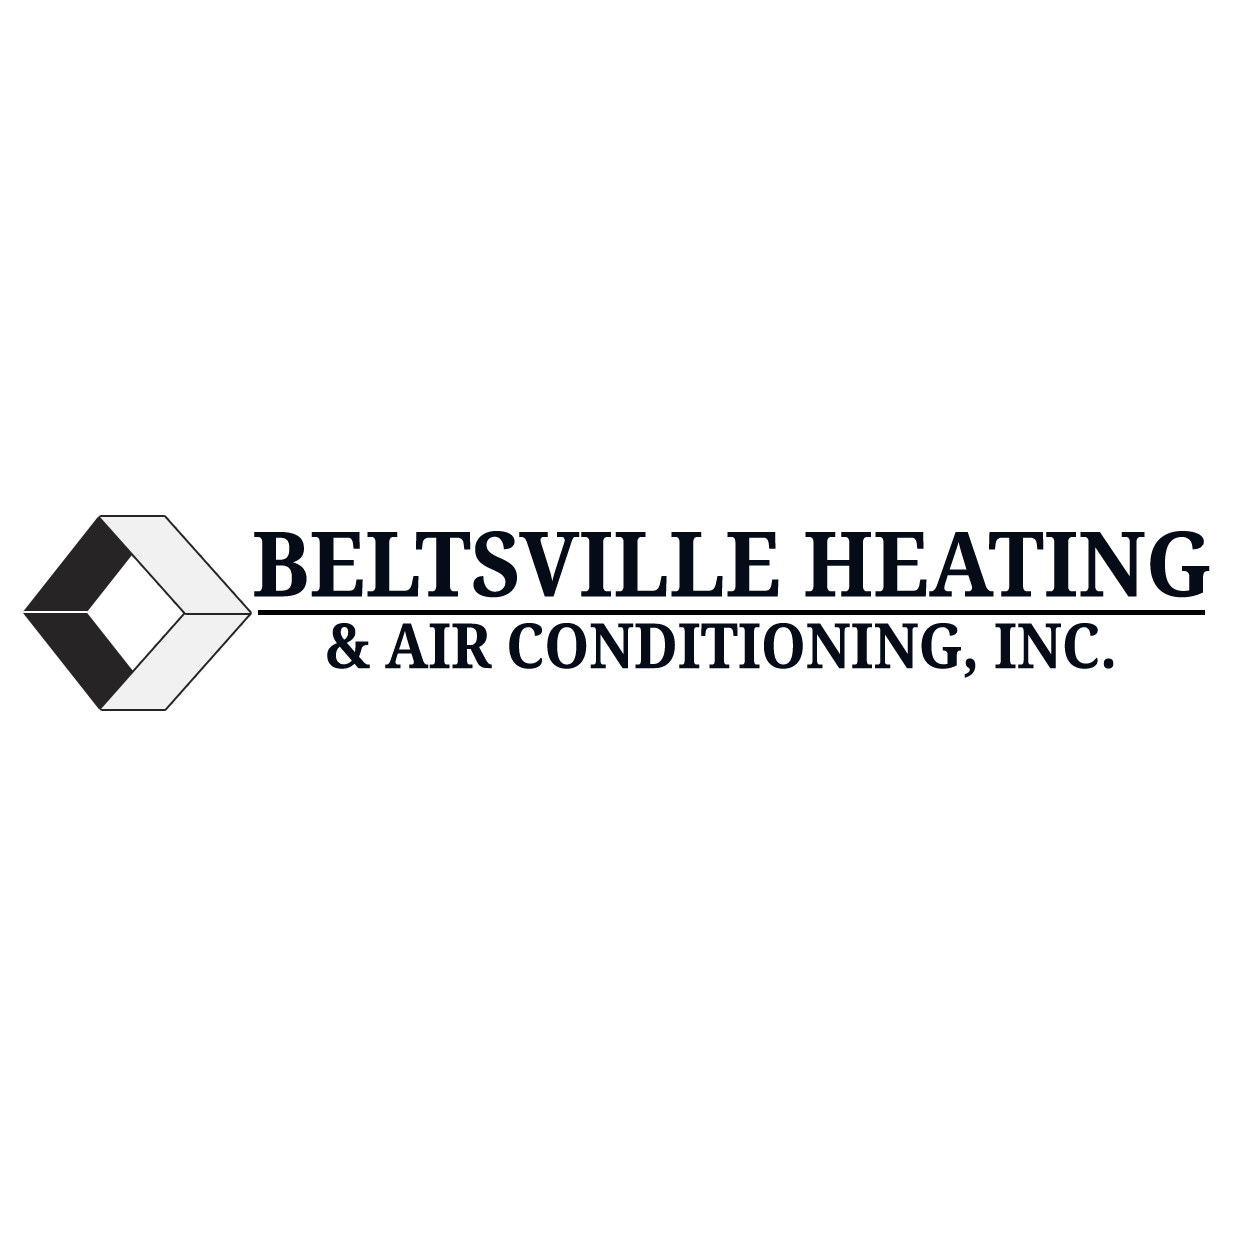 Beltsville Heating and Air Conditioning, Inc. image 0